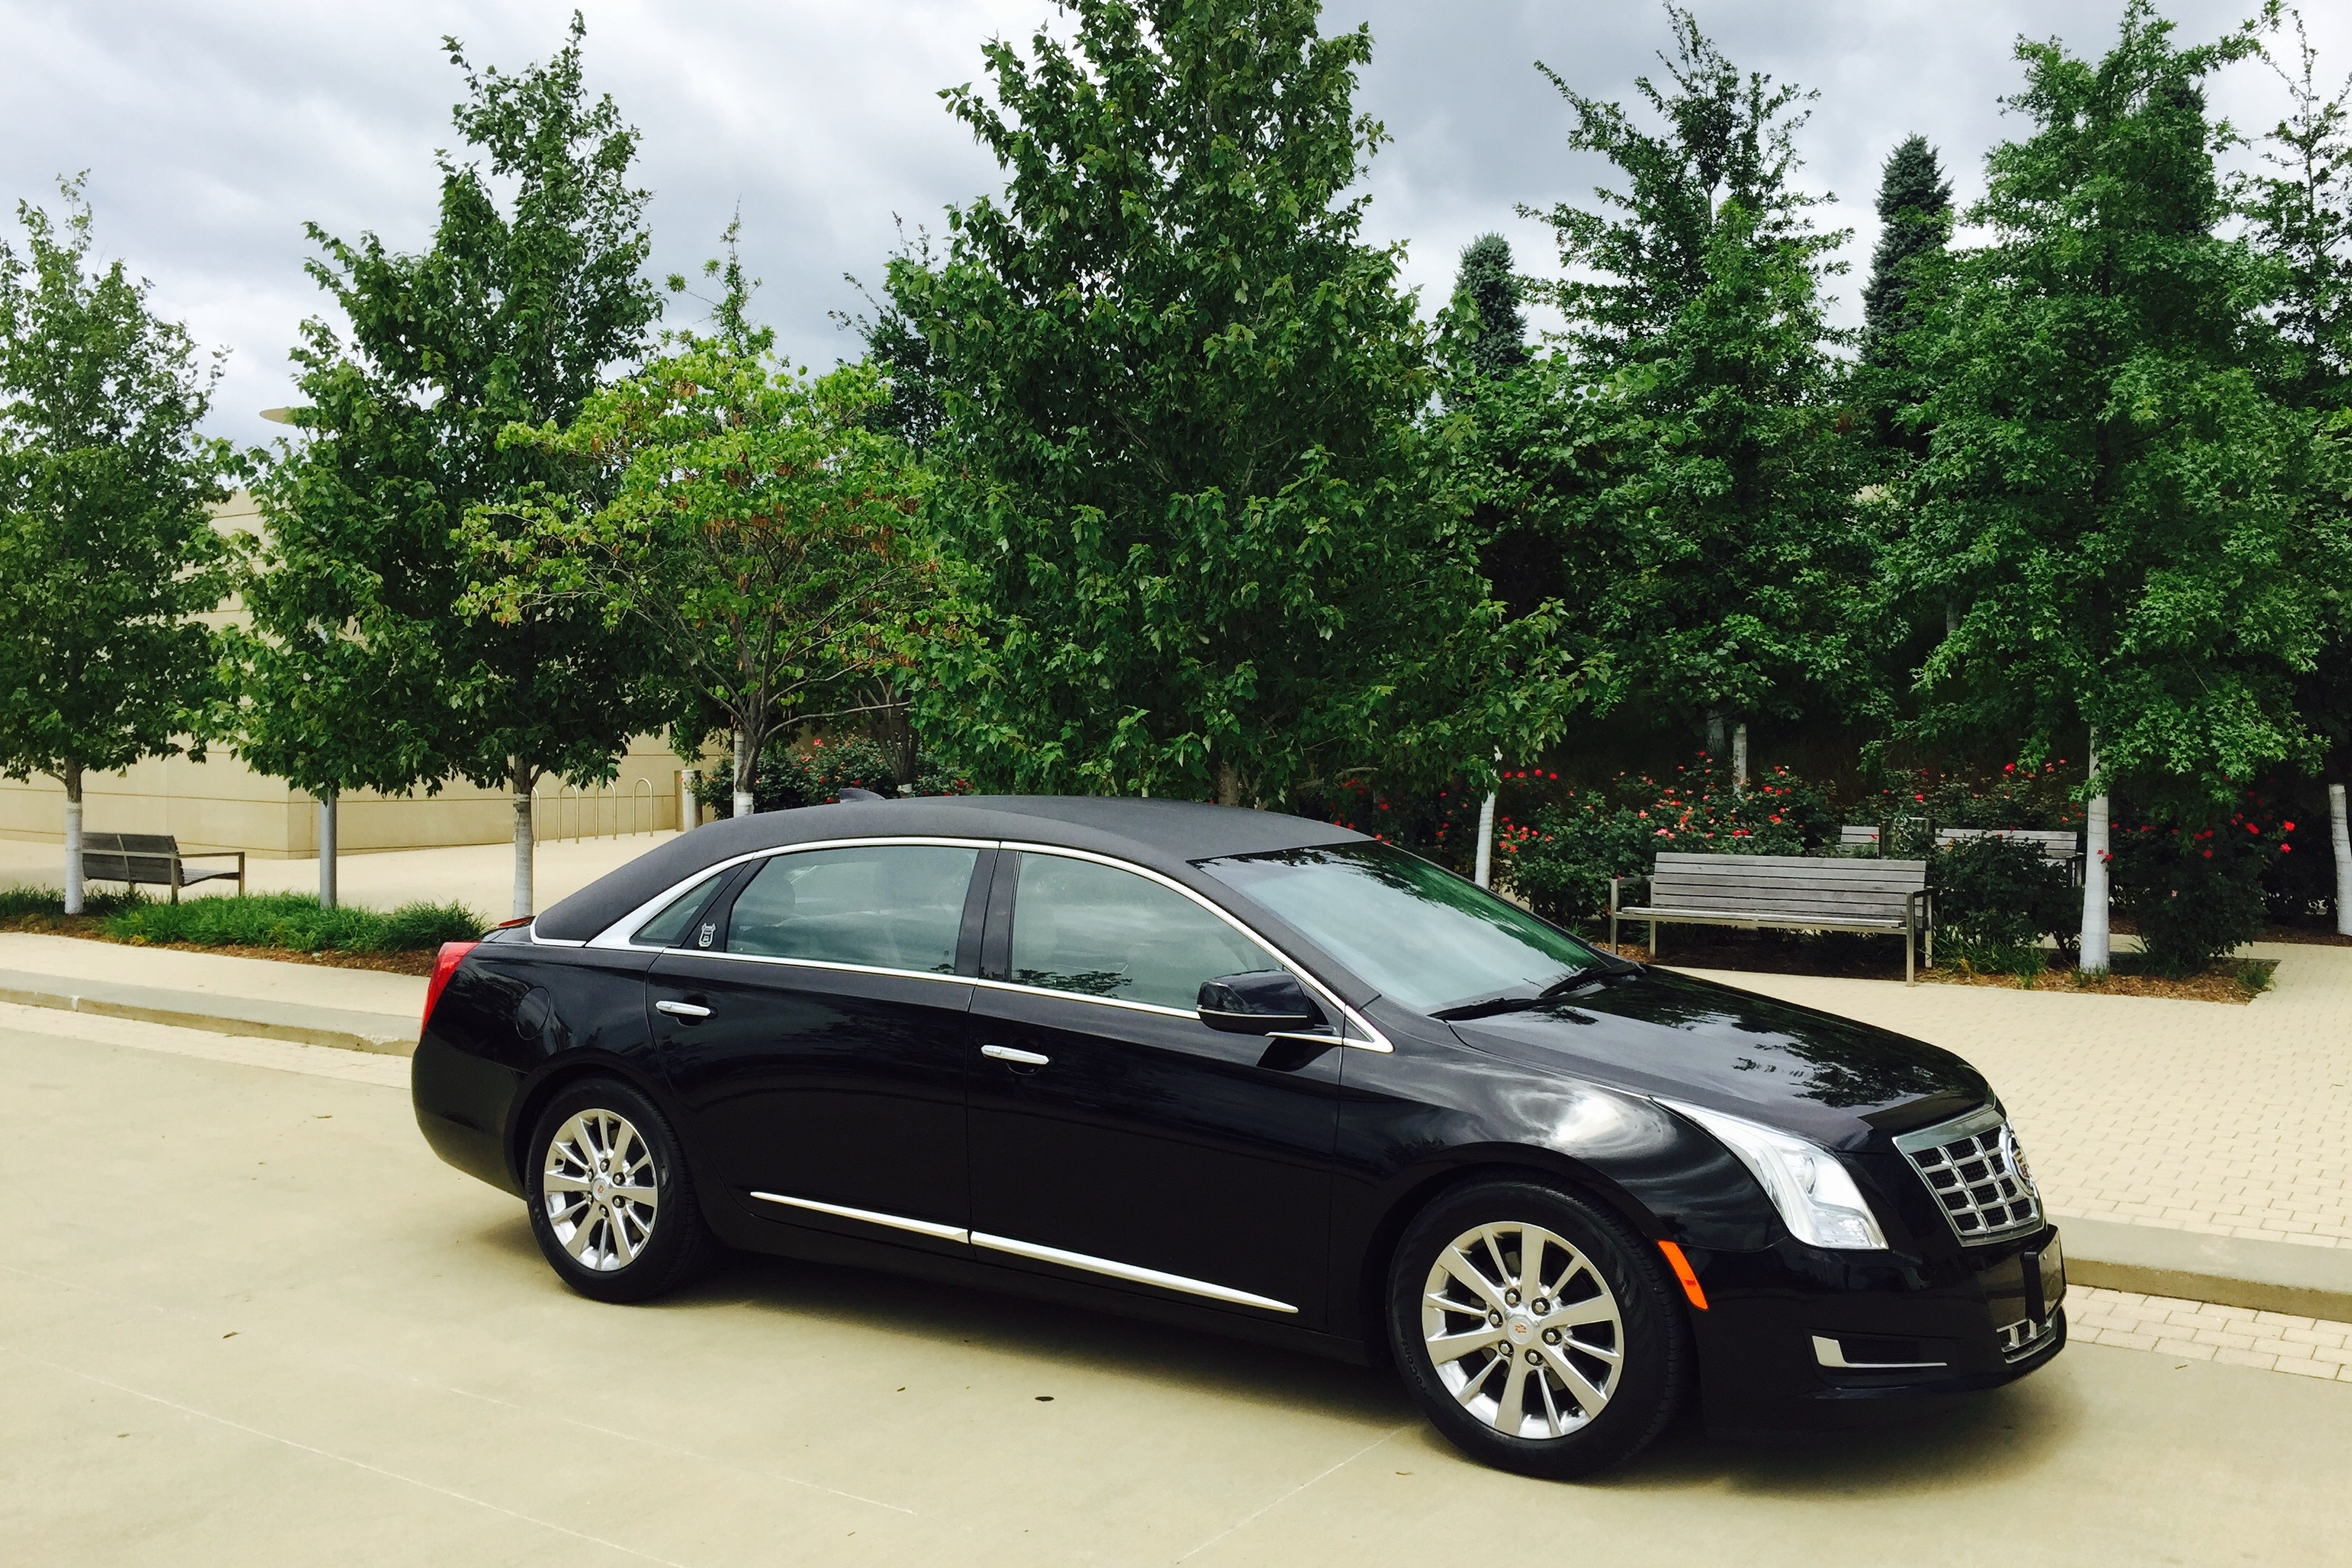 XTS – XL Sedan - Armbruster Stageway - Funeral Cars For Sale